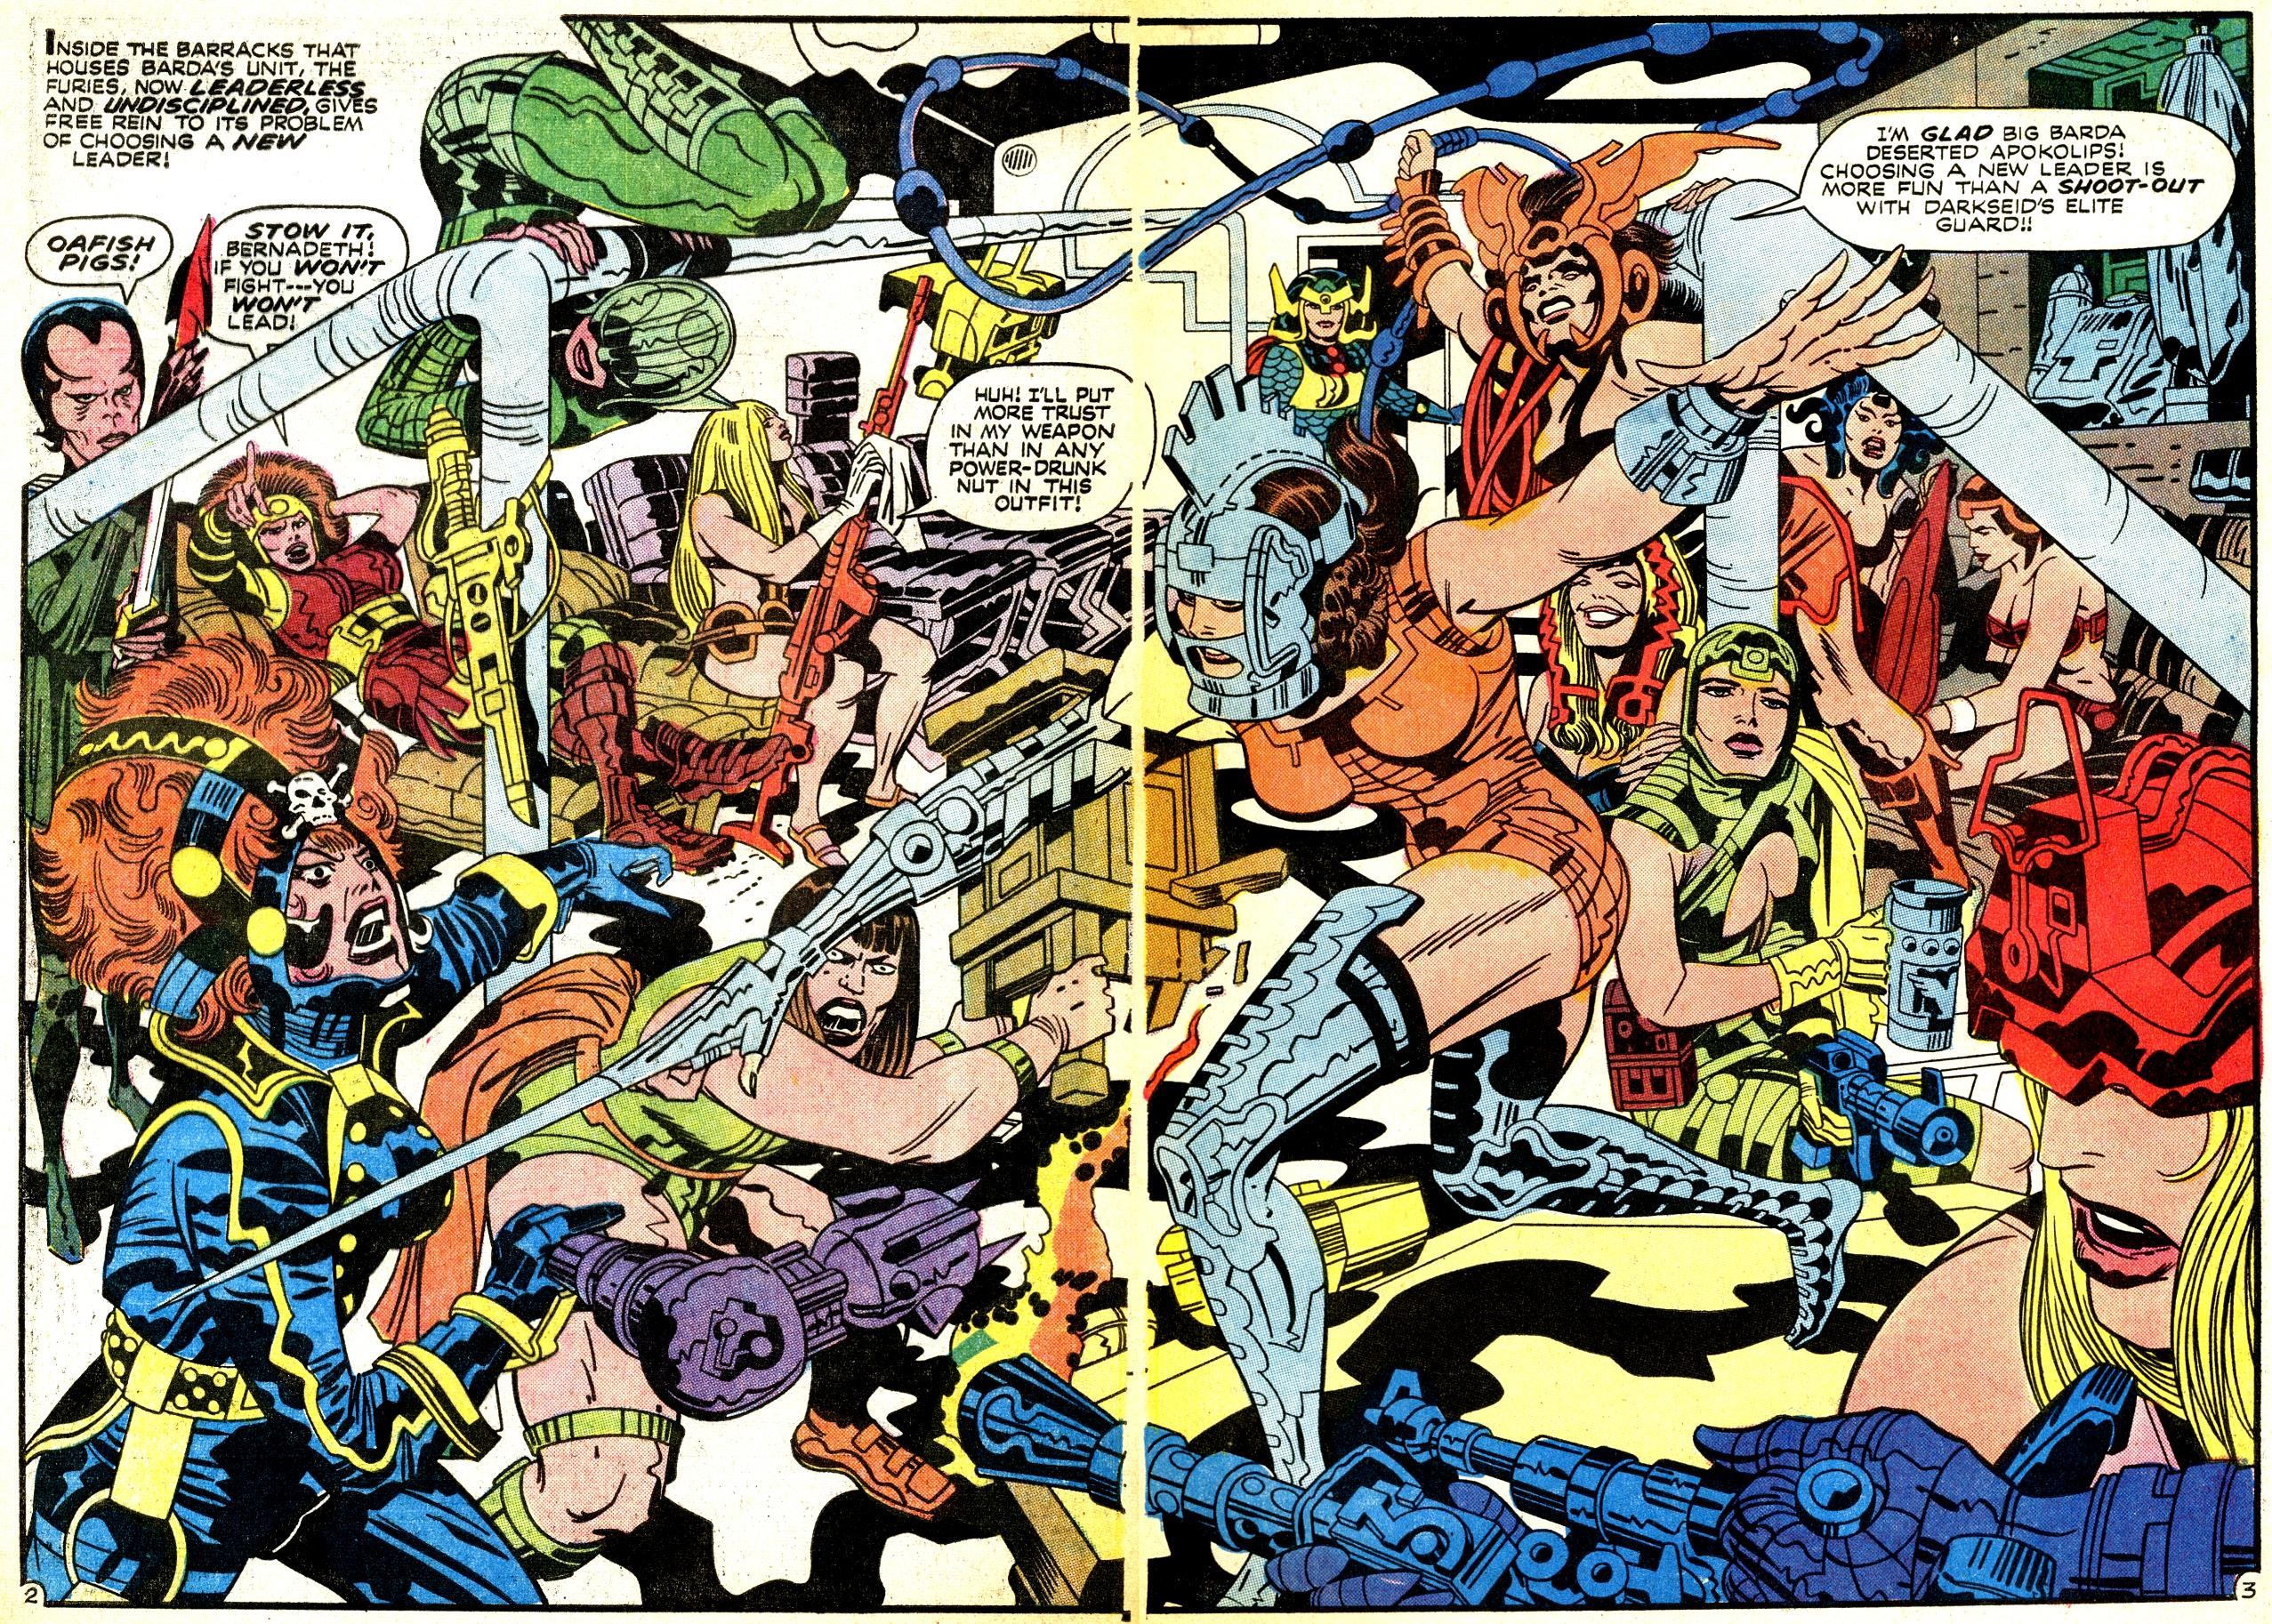 jack-kirby-mister-miracle-splash-panels-